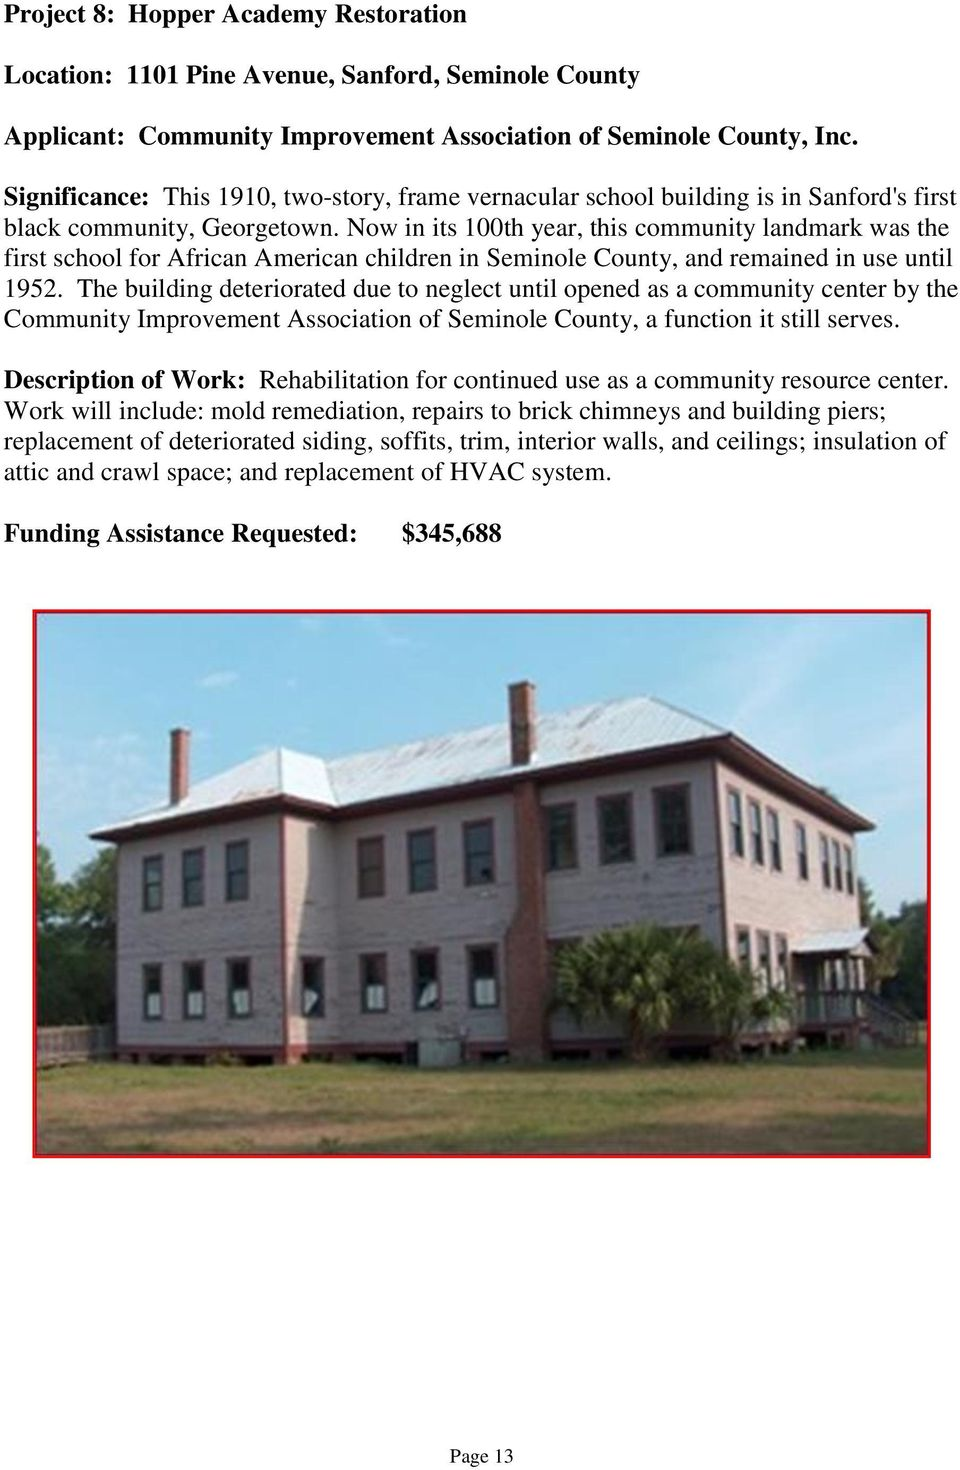 Now in its 100th year, this community landmark was the first school for African American children in Seminole County, and remained in use until 1952.